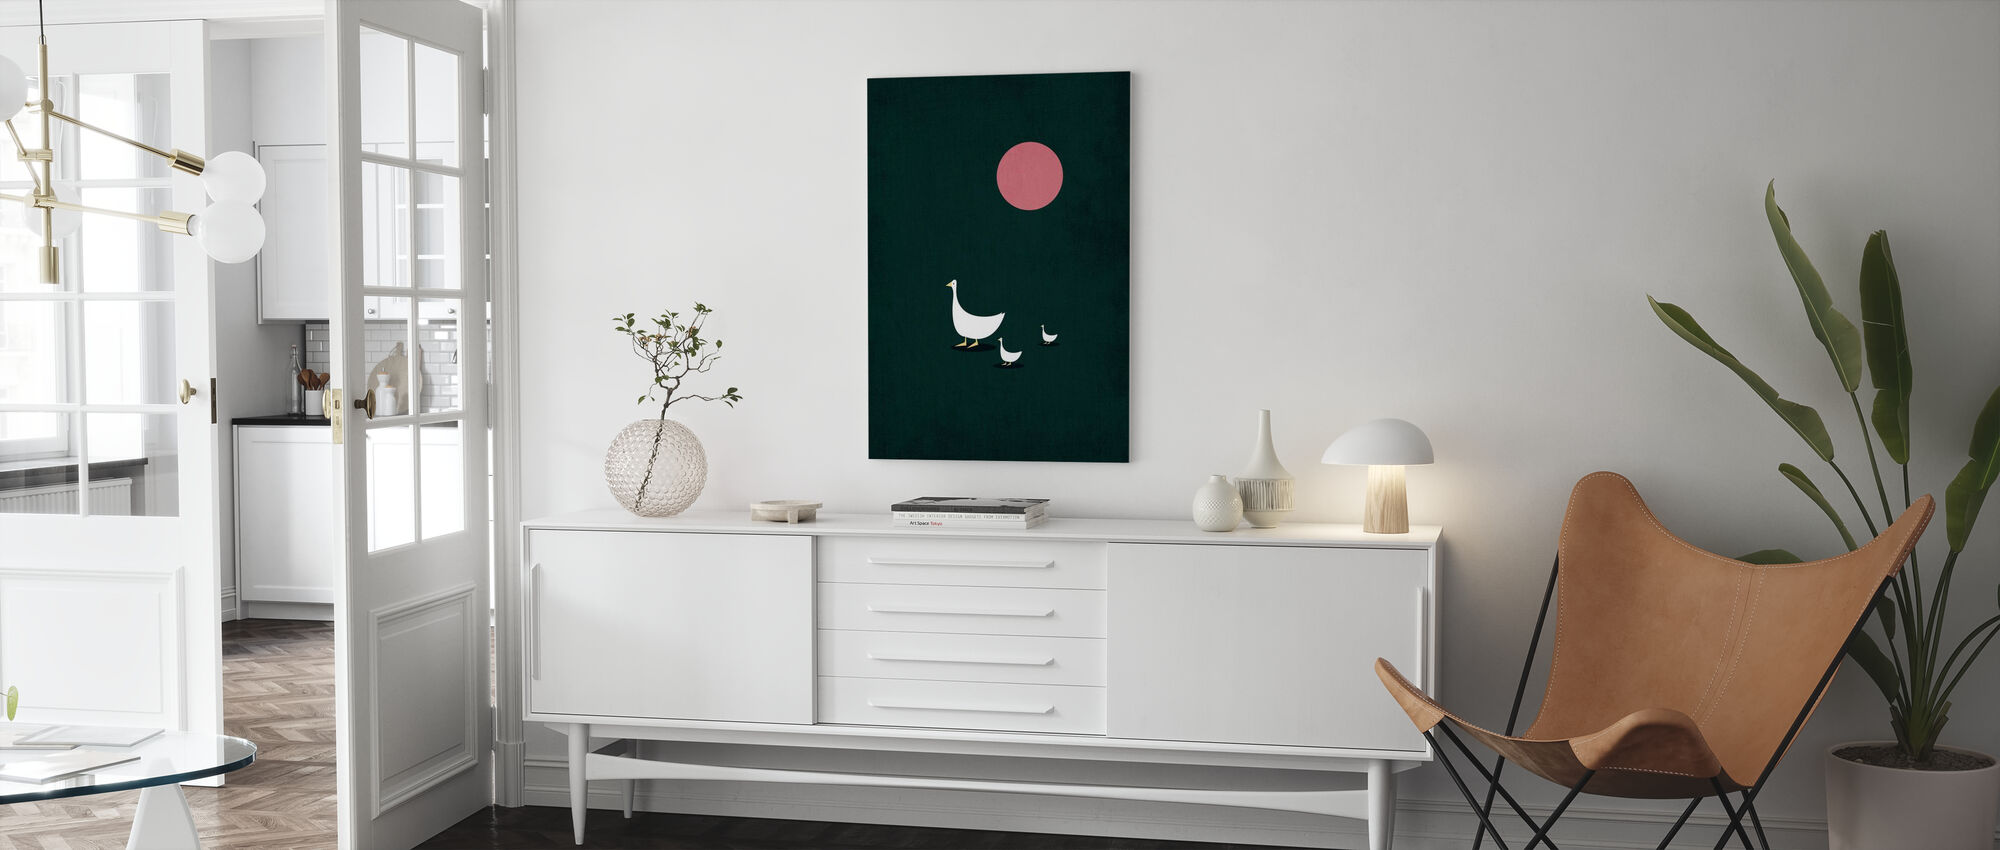 Sunny Side of Life - Canvas print - Living Room